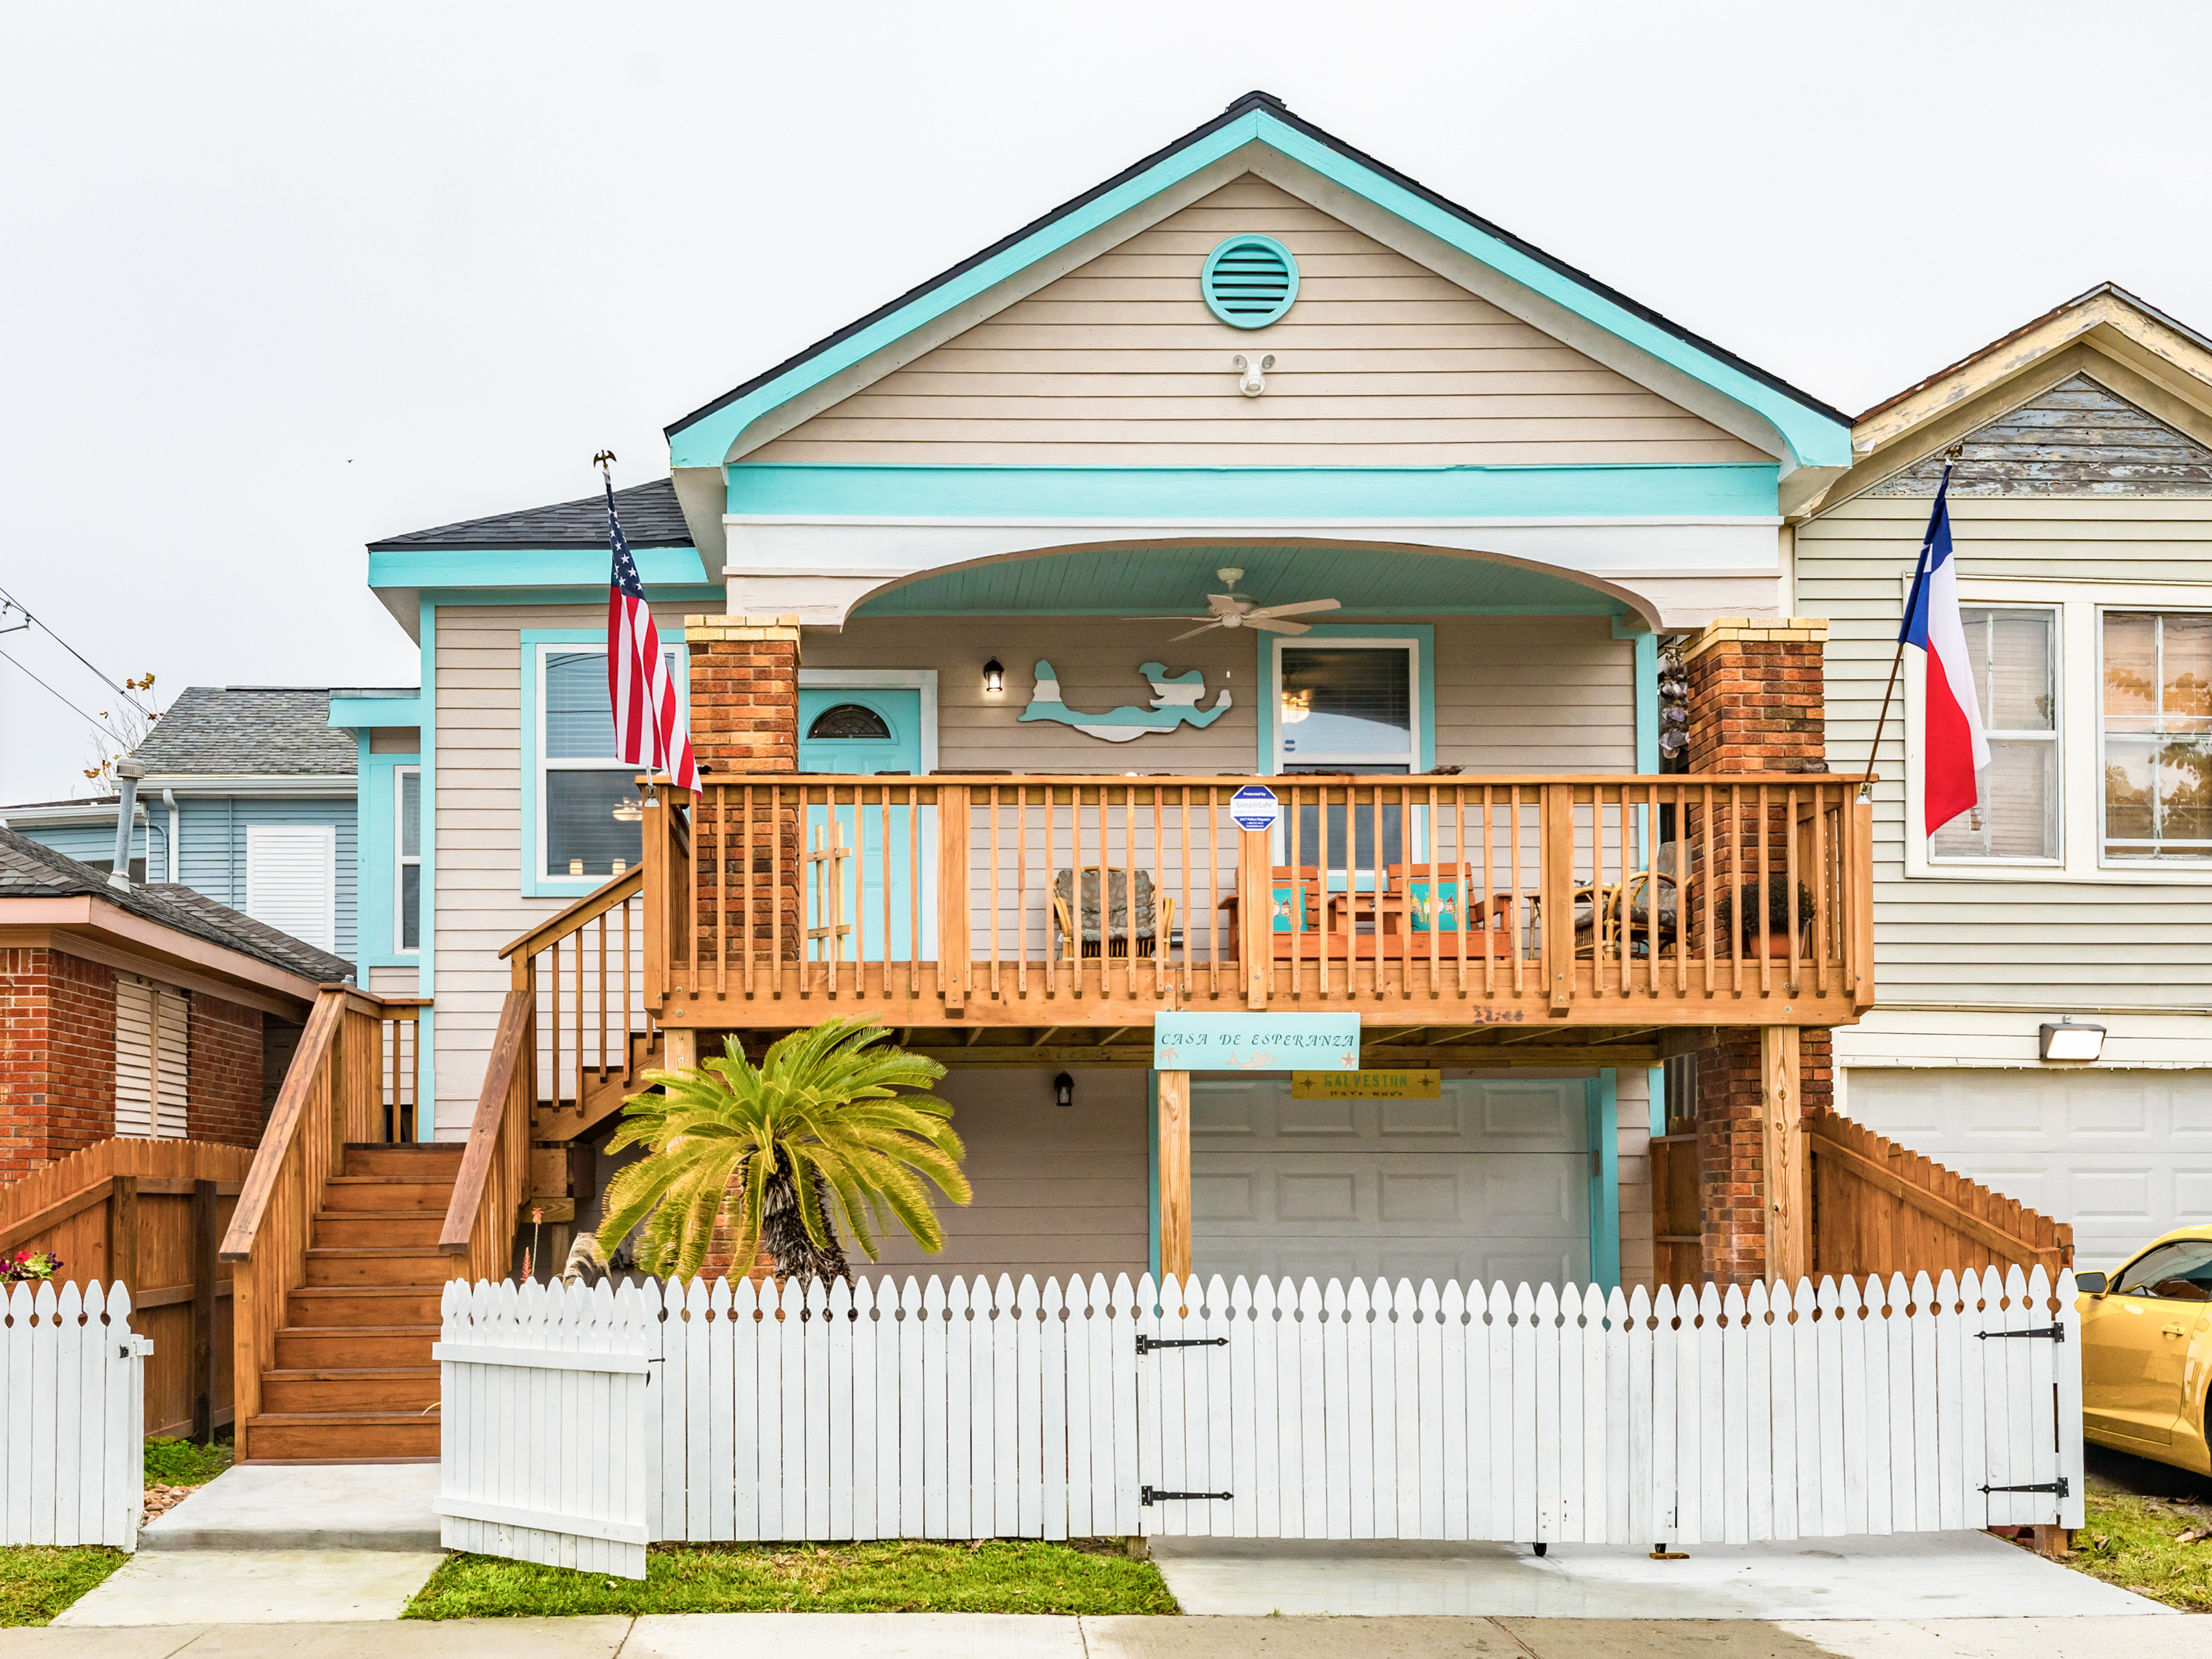 Galveston TX Vacation Rental Welcome to Galveston!